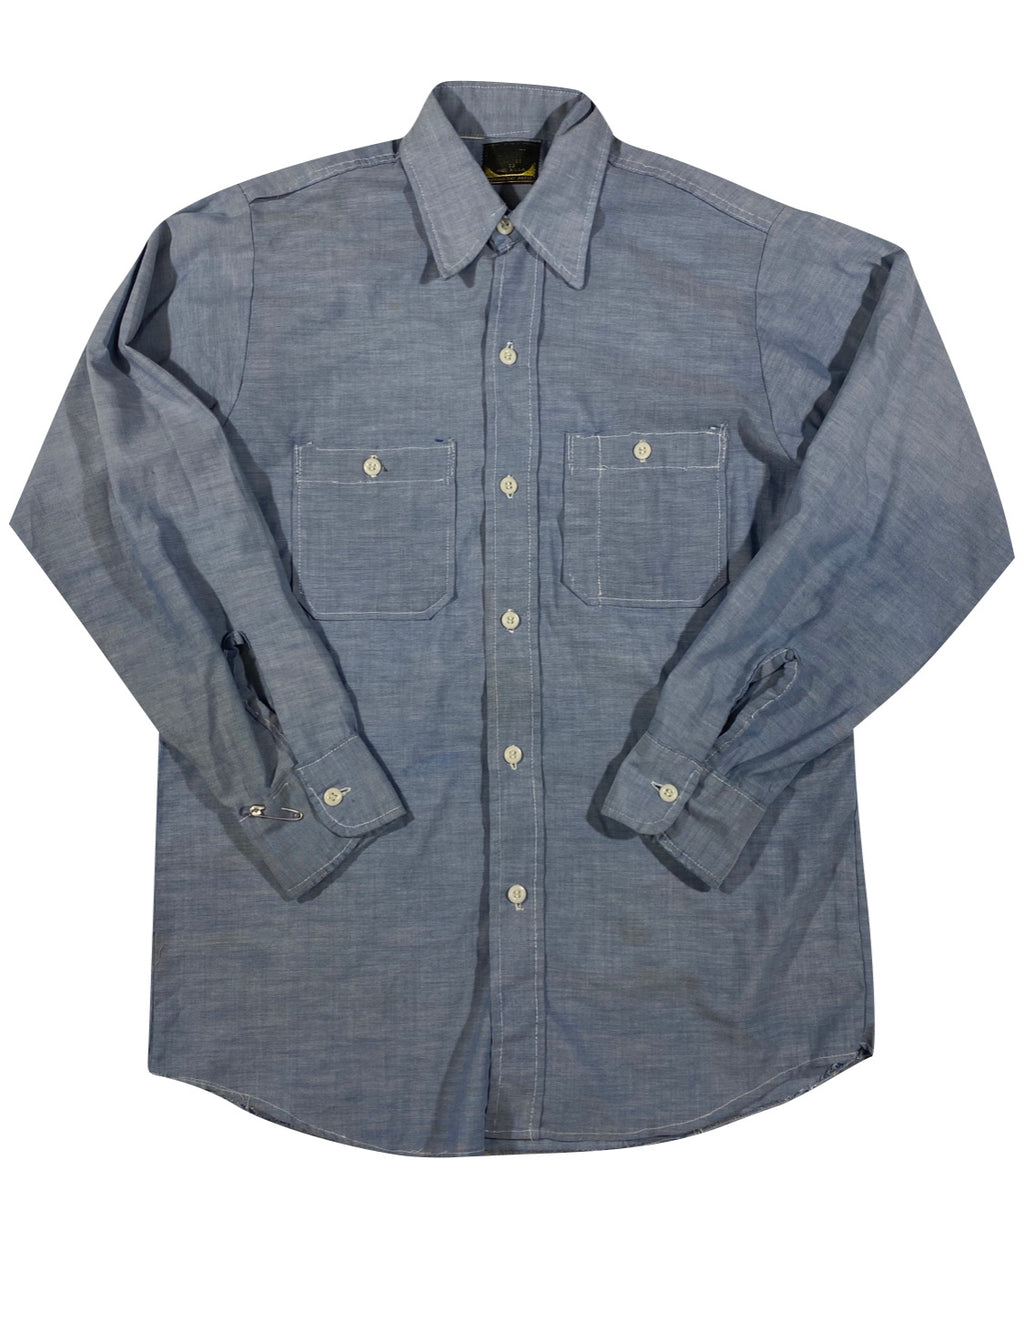 60/70s well worn chambray work shirt. Small